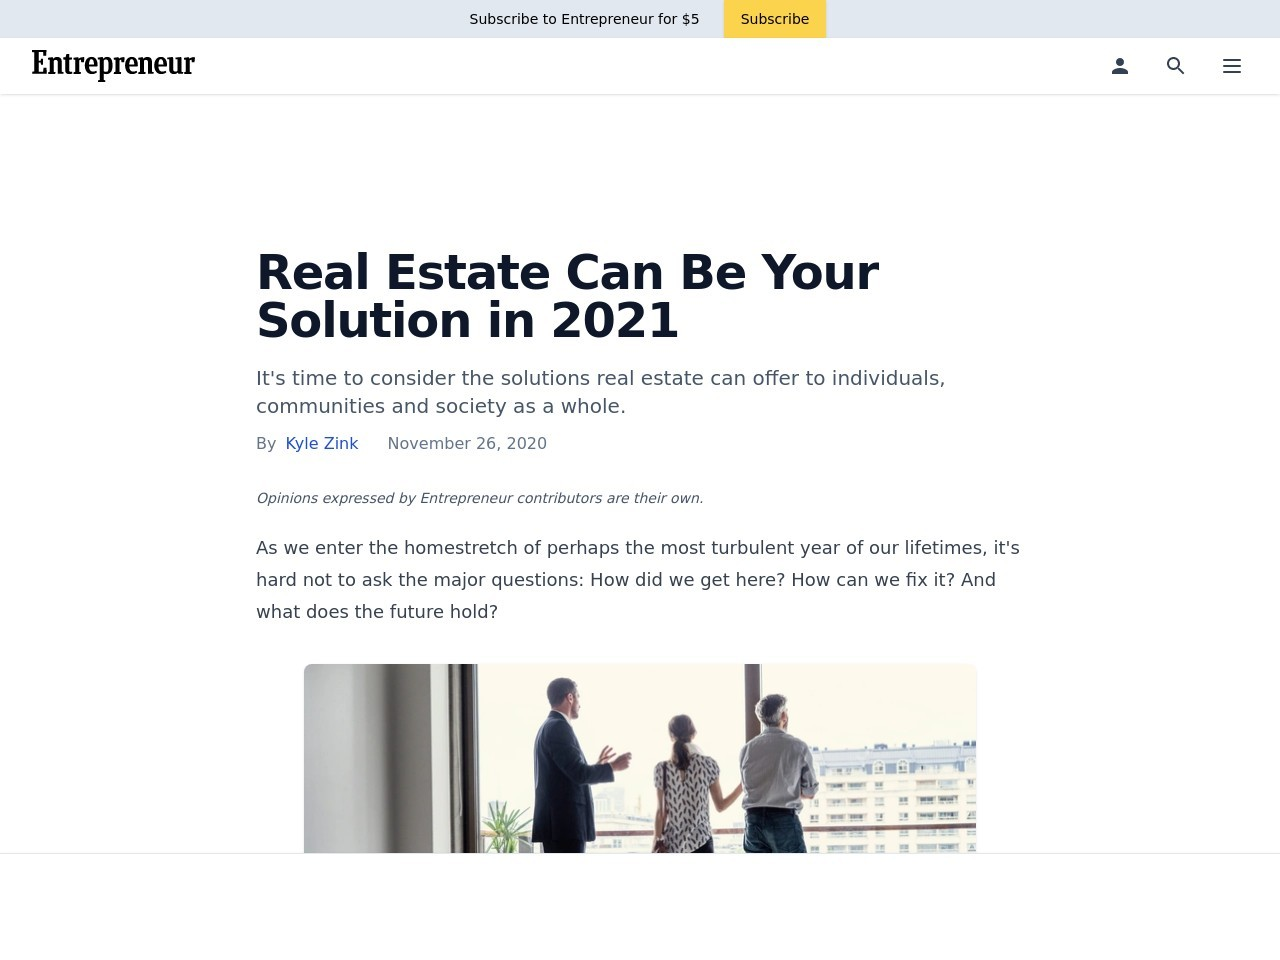 Real Estate Can Be Your Solution in 2021